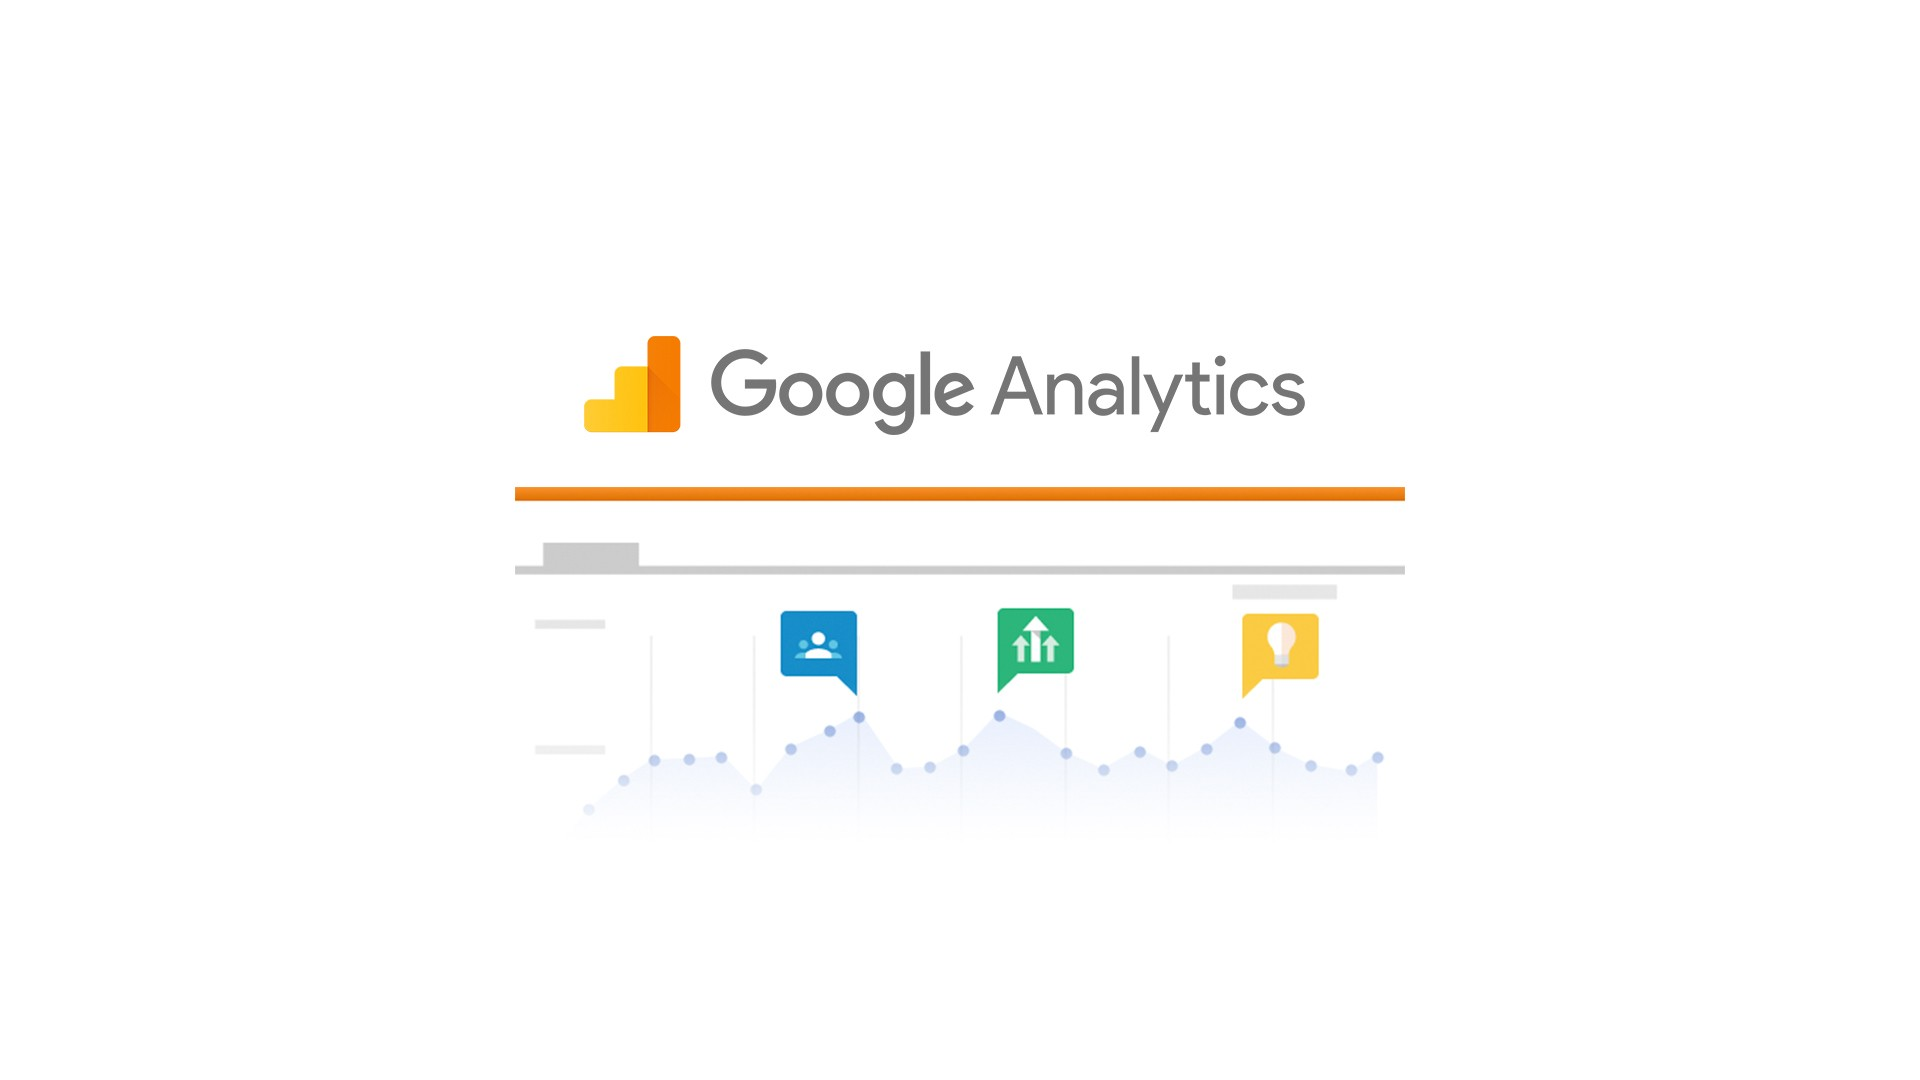 datlas_mx_blog_google_analytics_logo